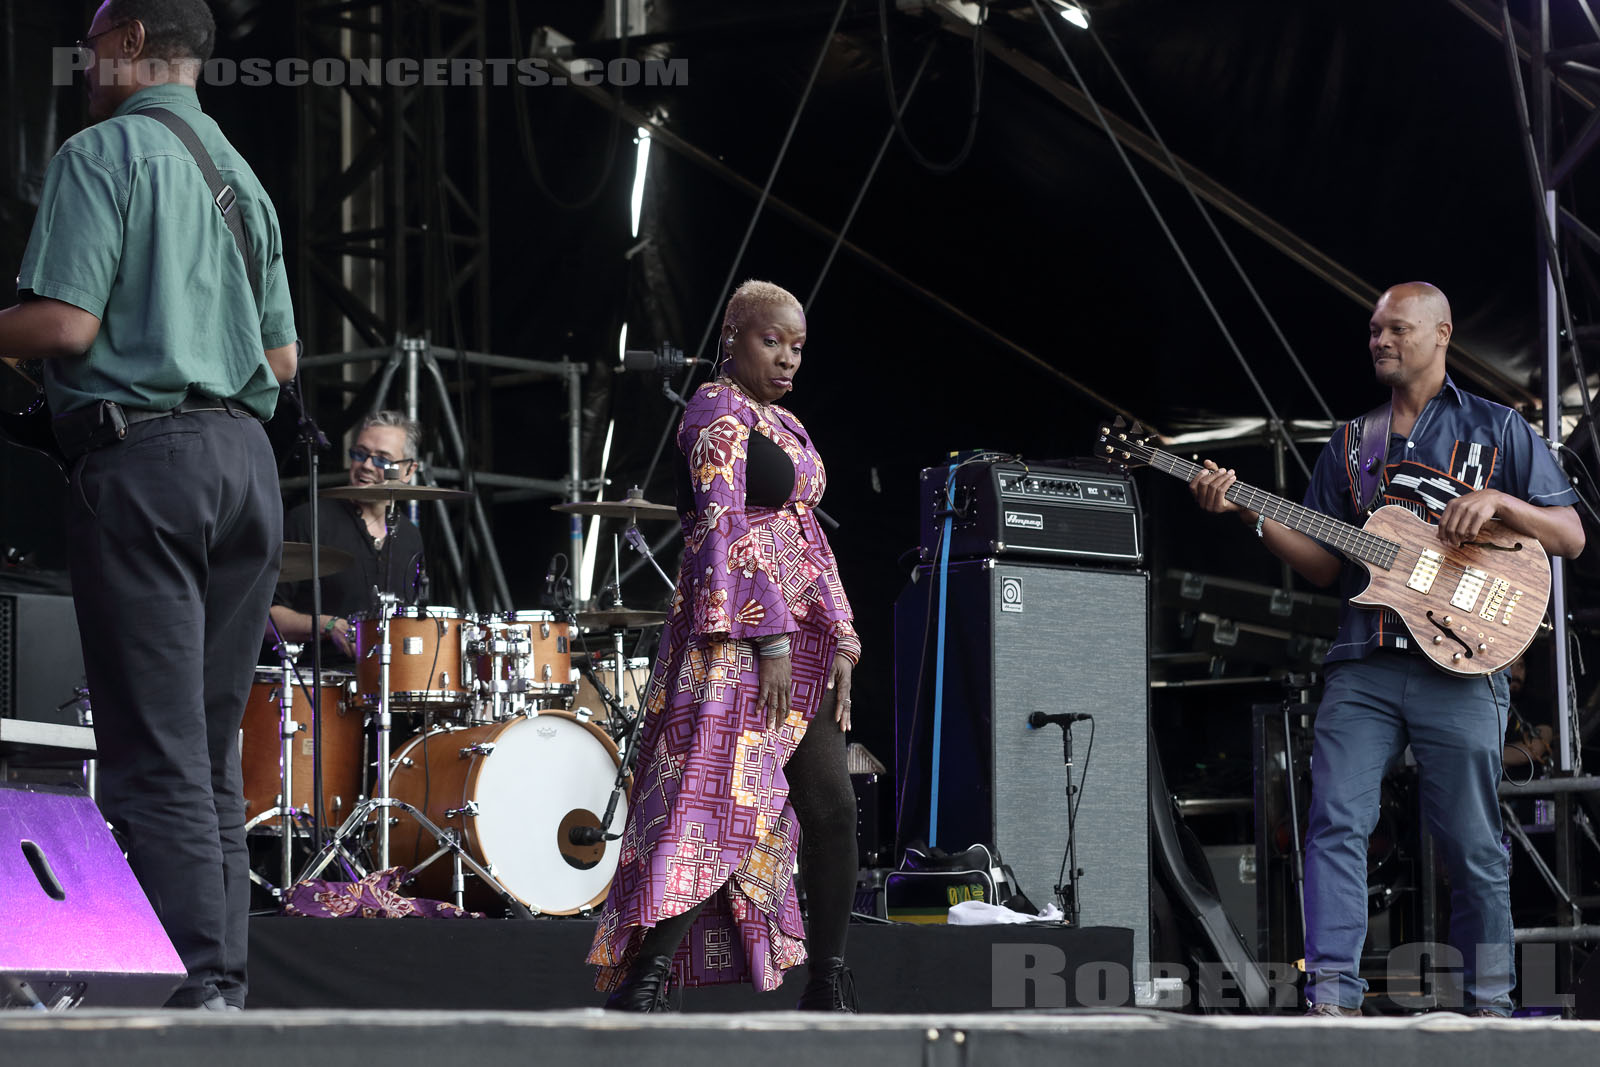 ANGELIQUE KIDJO - 2016-06-25 - PARIS - Hippodrome de Longchamp - Bagatelle